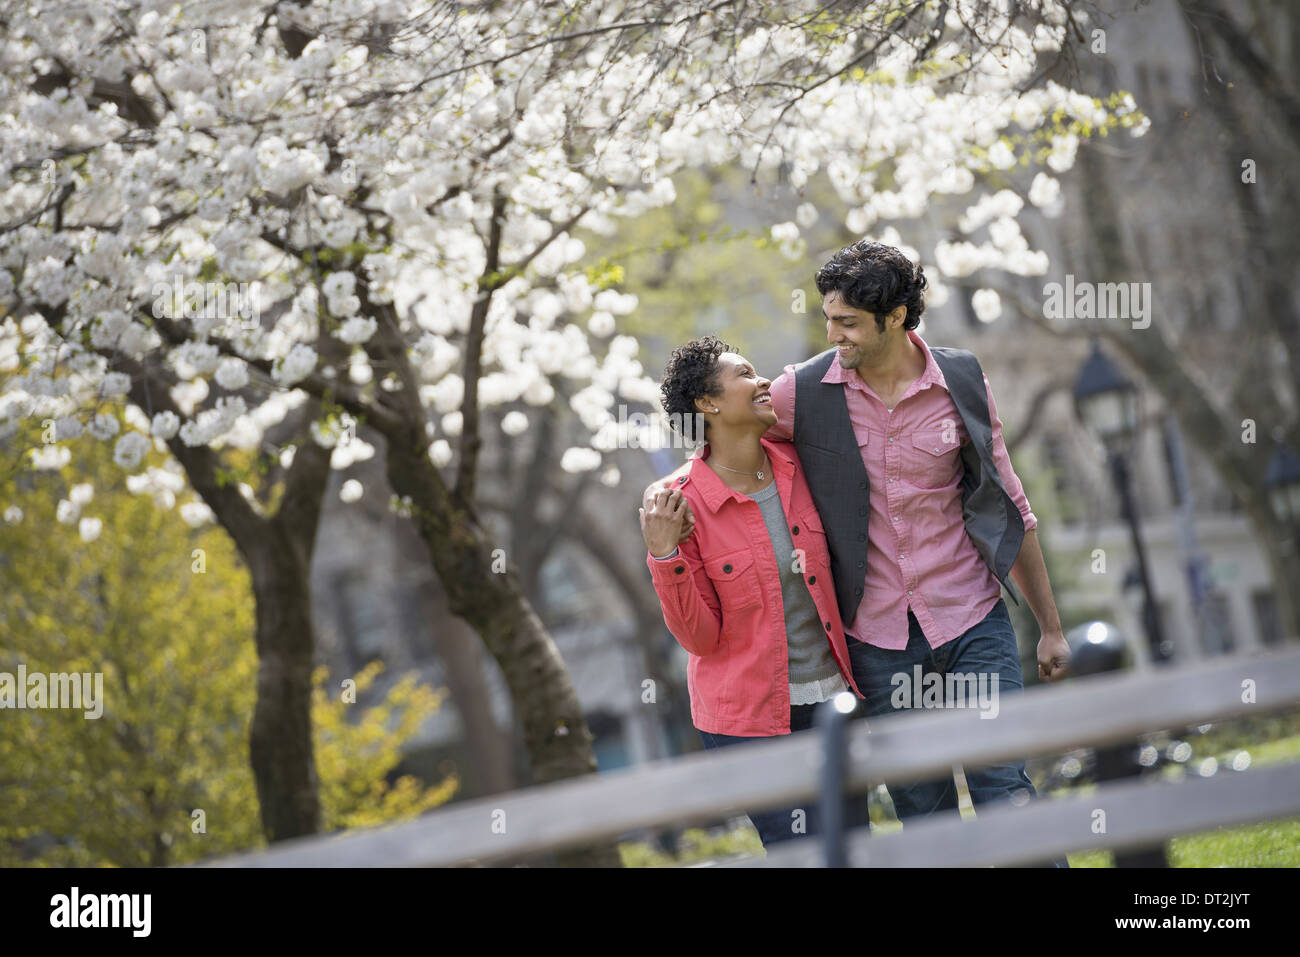 park A couple man and woman looking into each others eyes - Stock Image